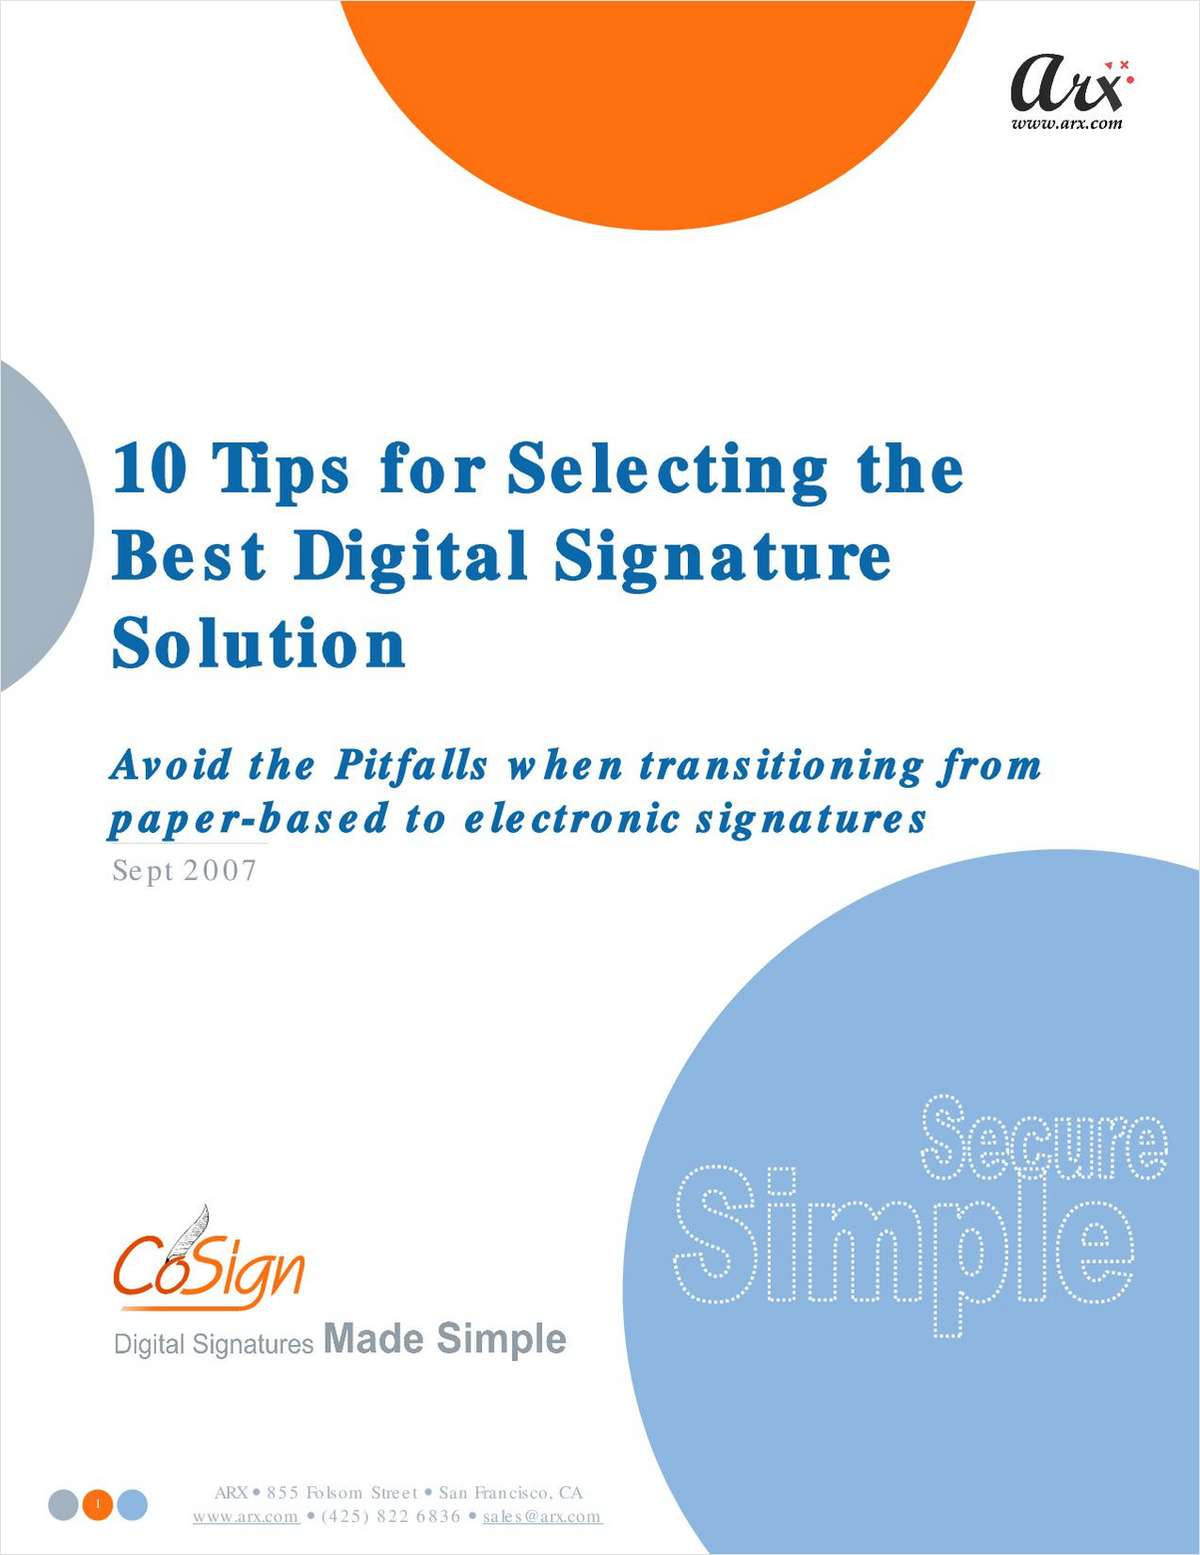 10 Tips for Selecting the Best Digital Signature Solution